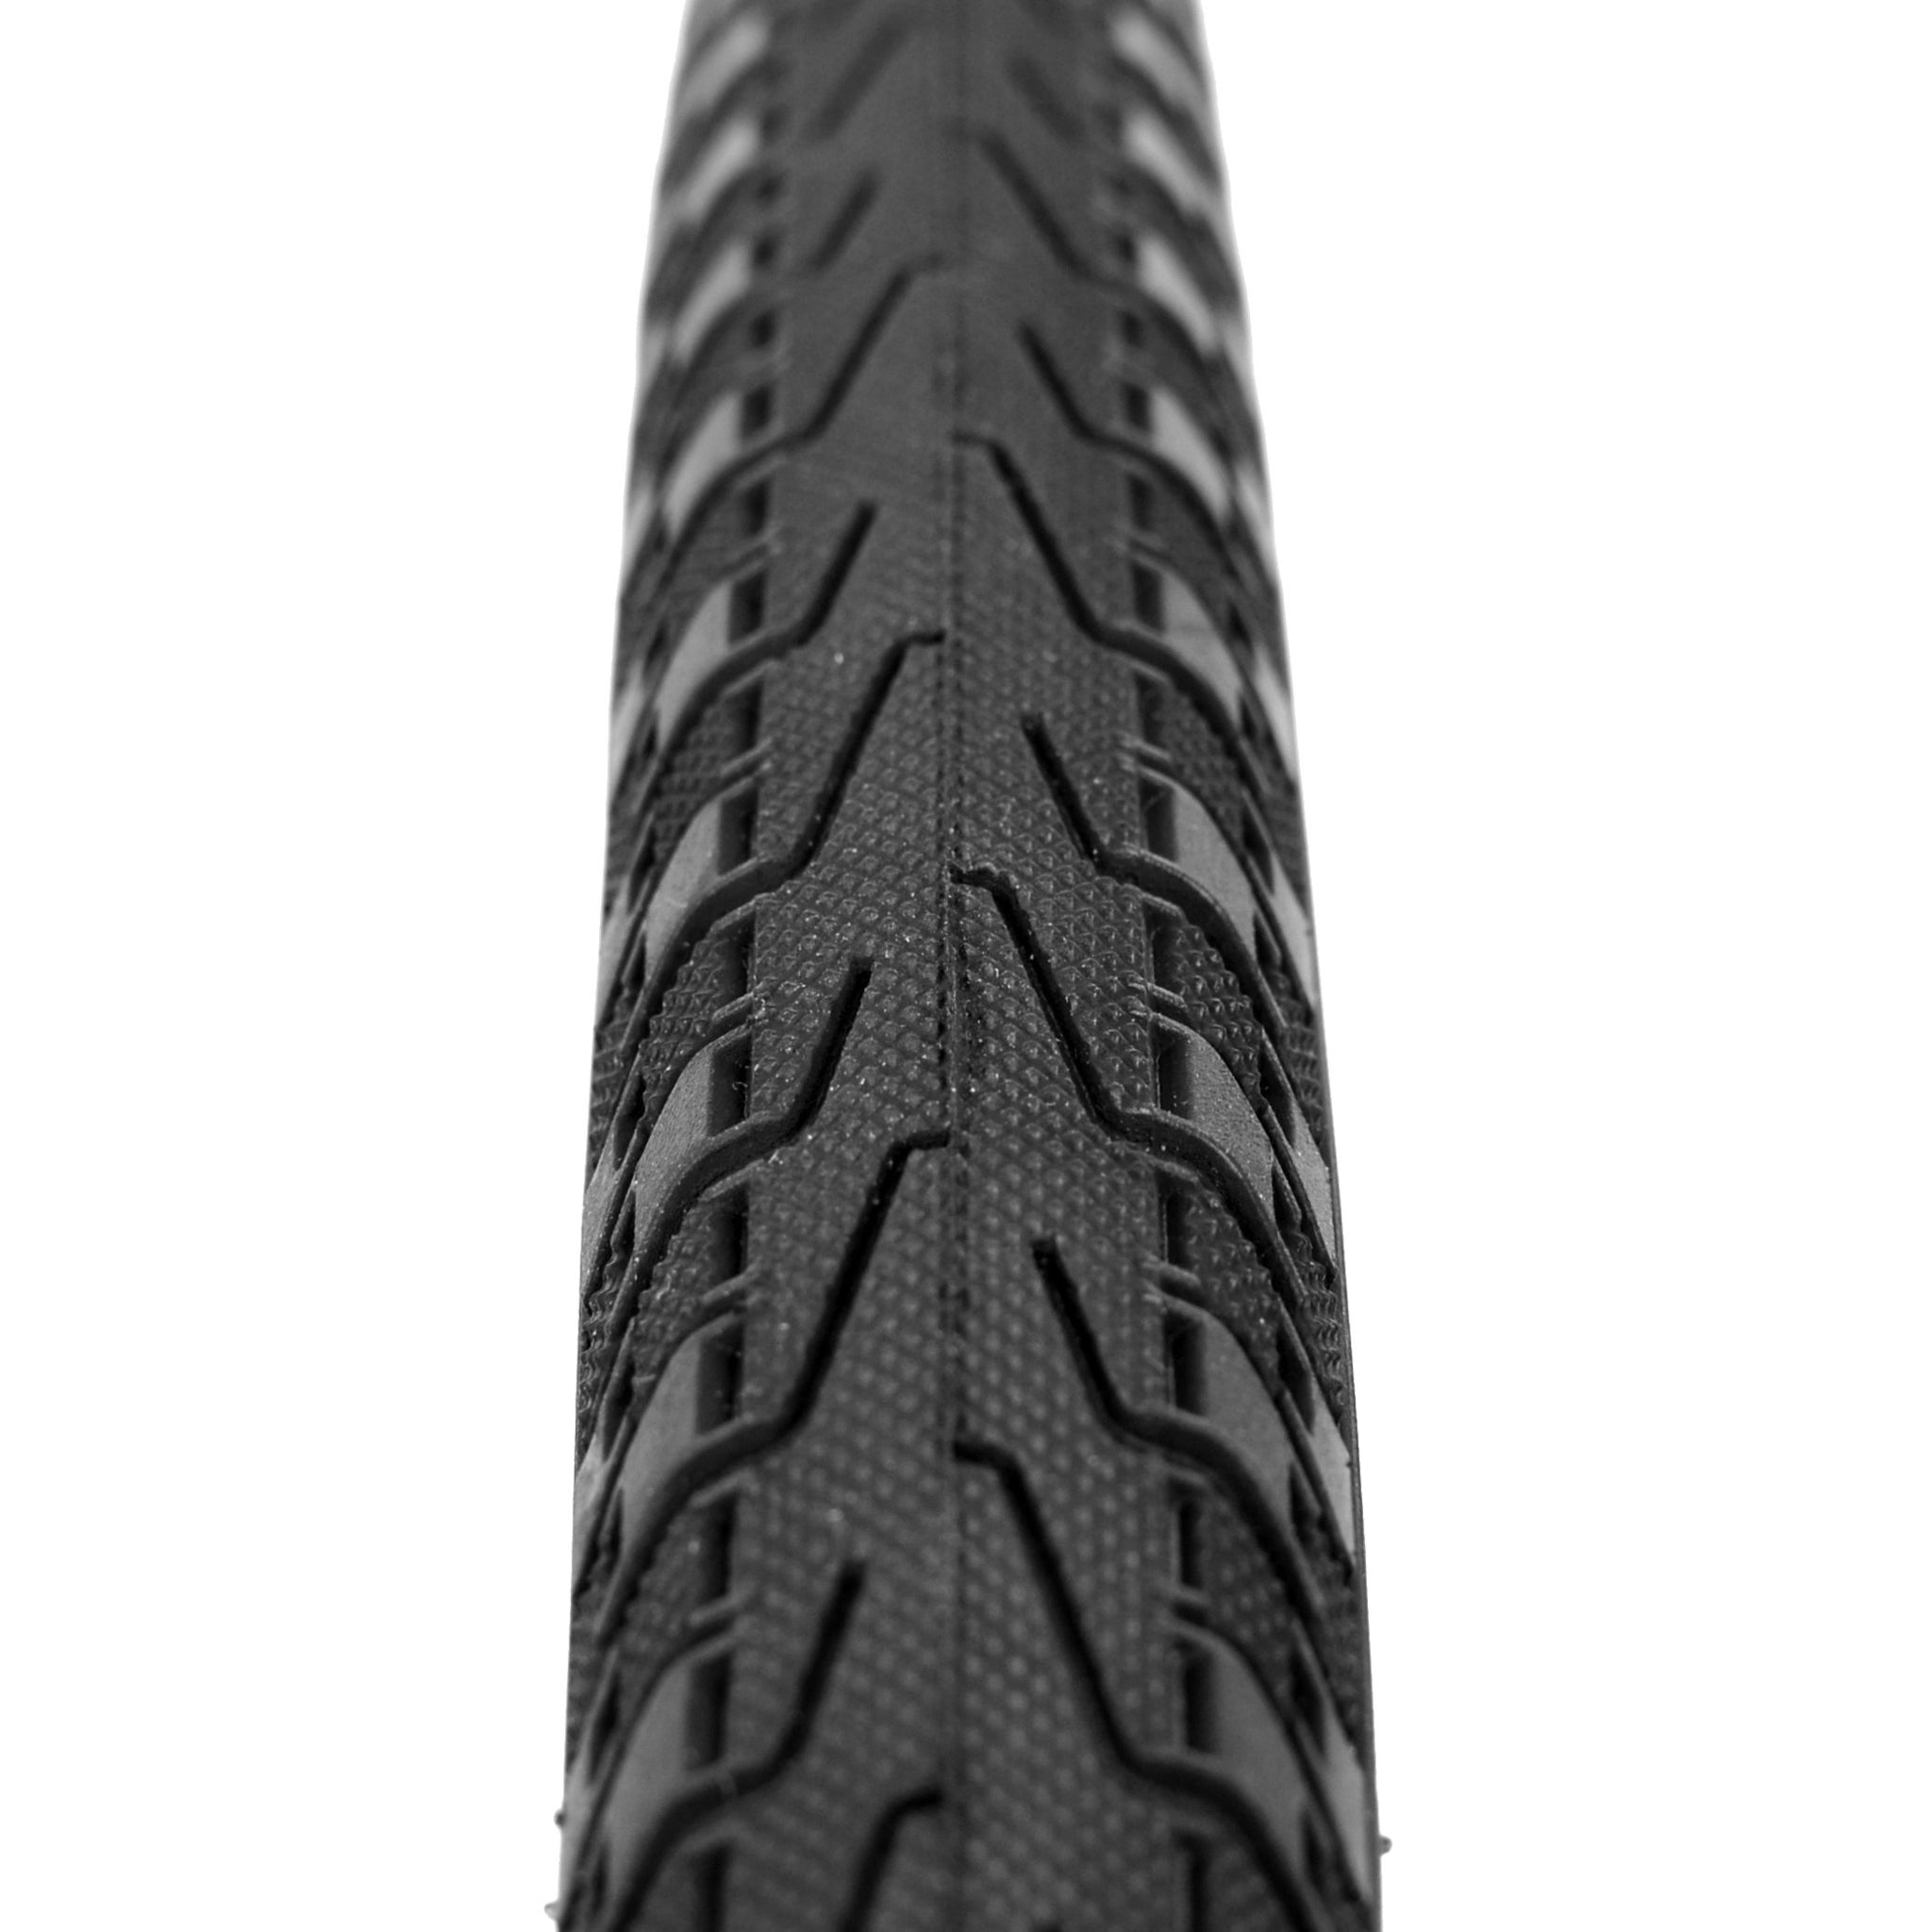 "Panaracer Pasela Tour Guard 27"" x 1 1/4"" Tires"